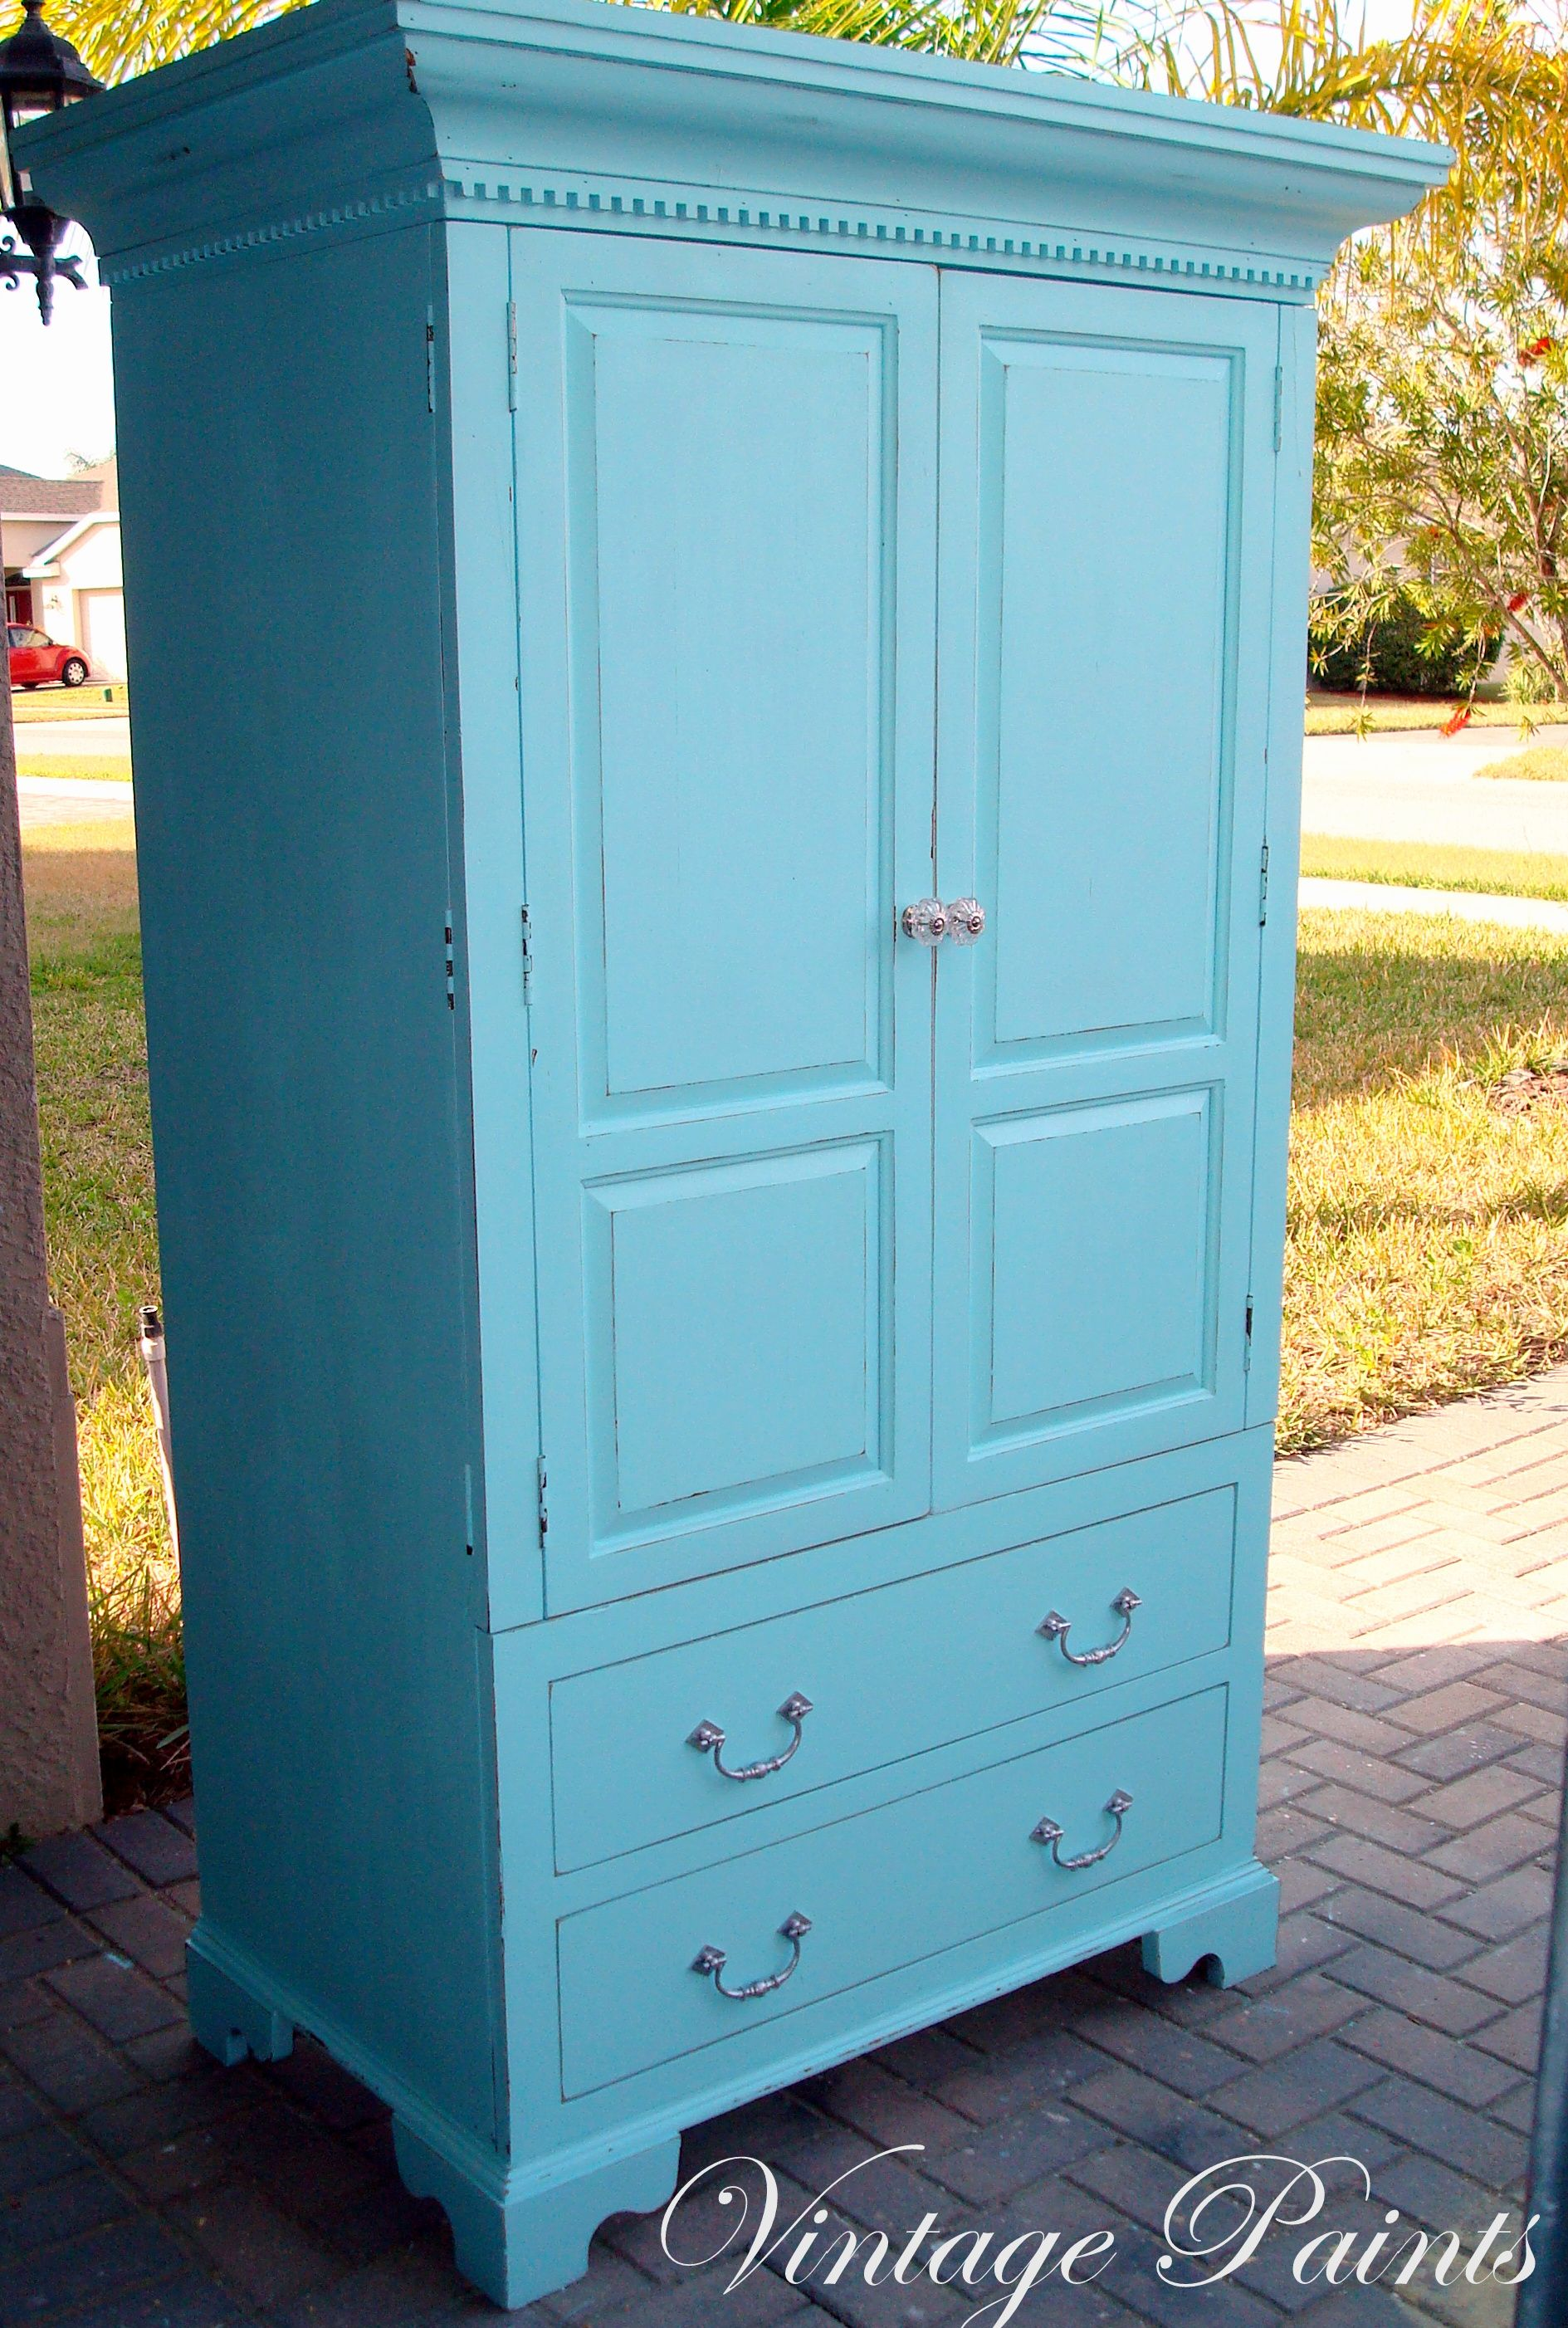 Aqua Armoire For A Babyu0027s Nursery! Upcycled TV Armoire, Distressed And  Painted. #